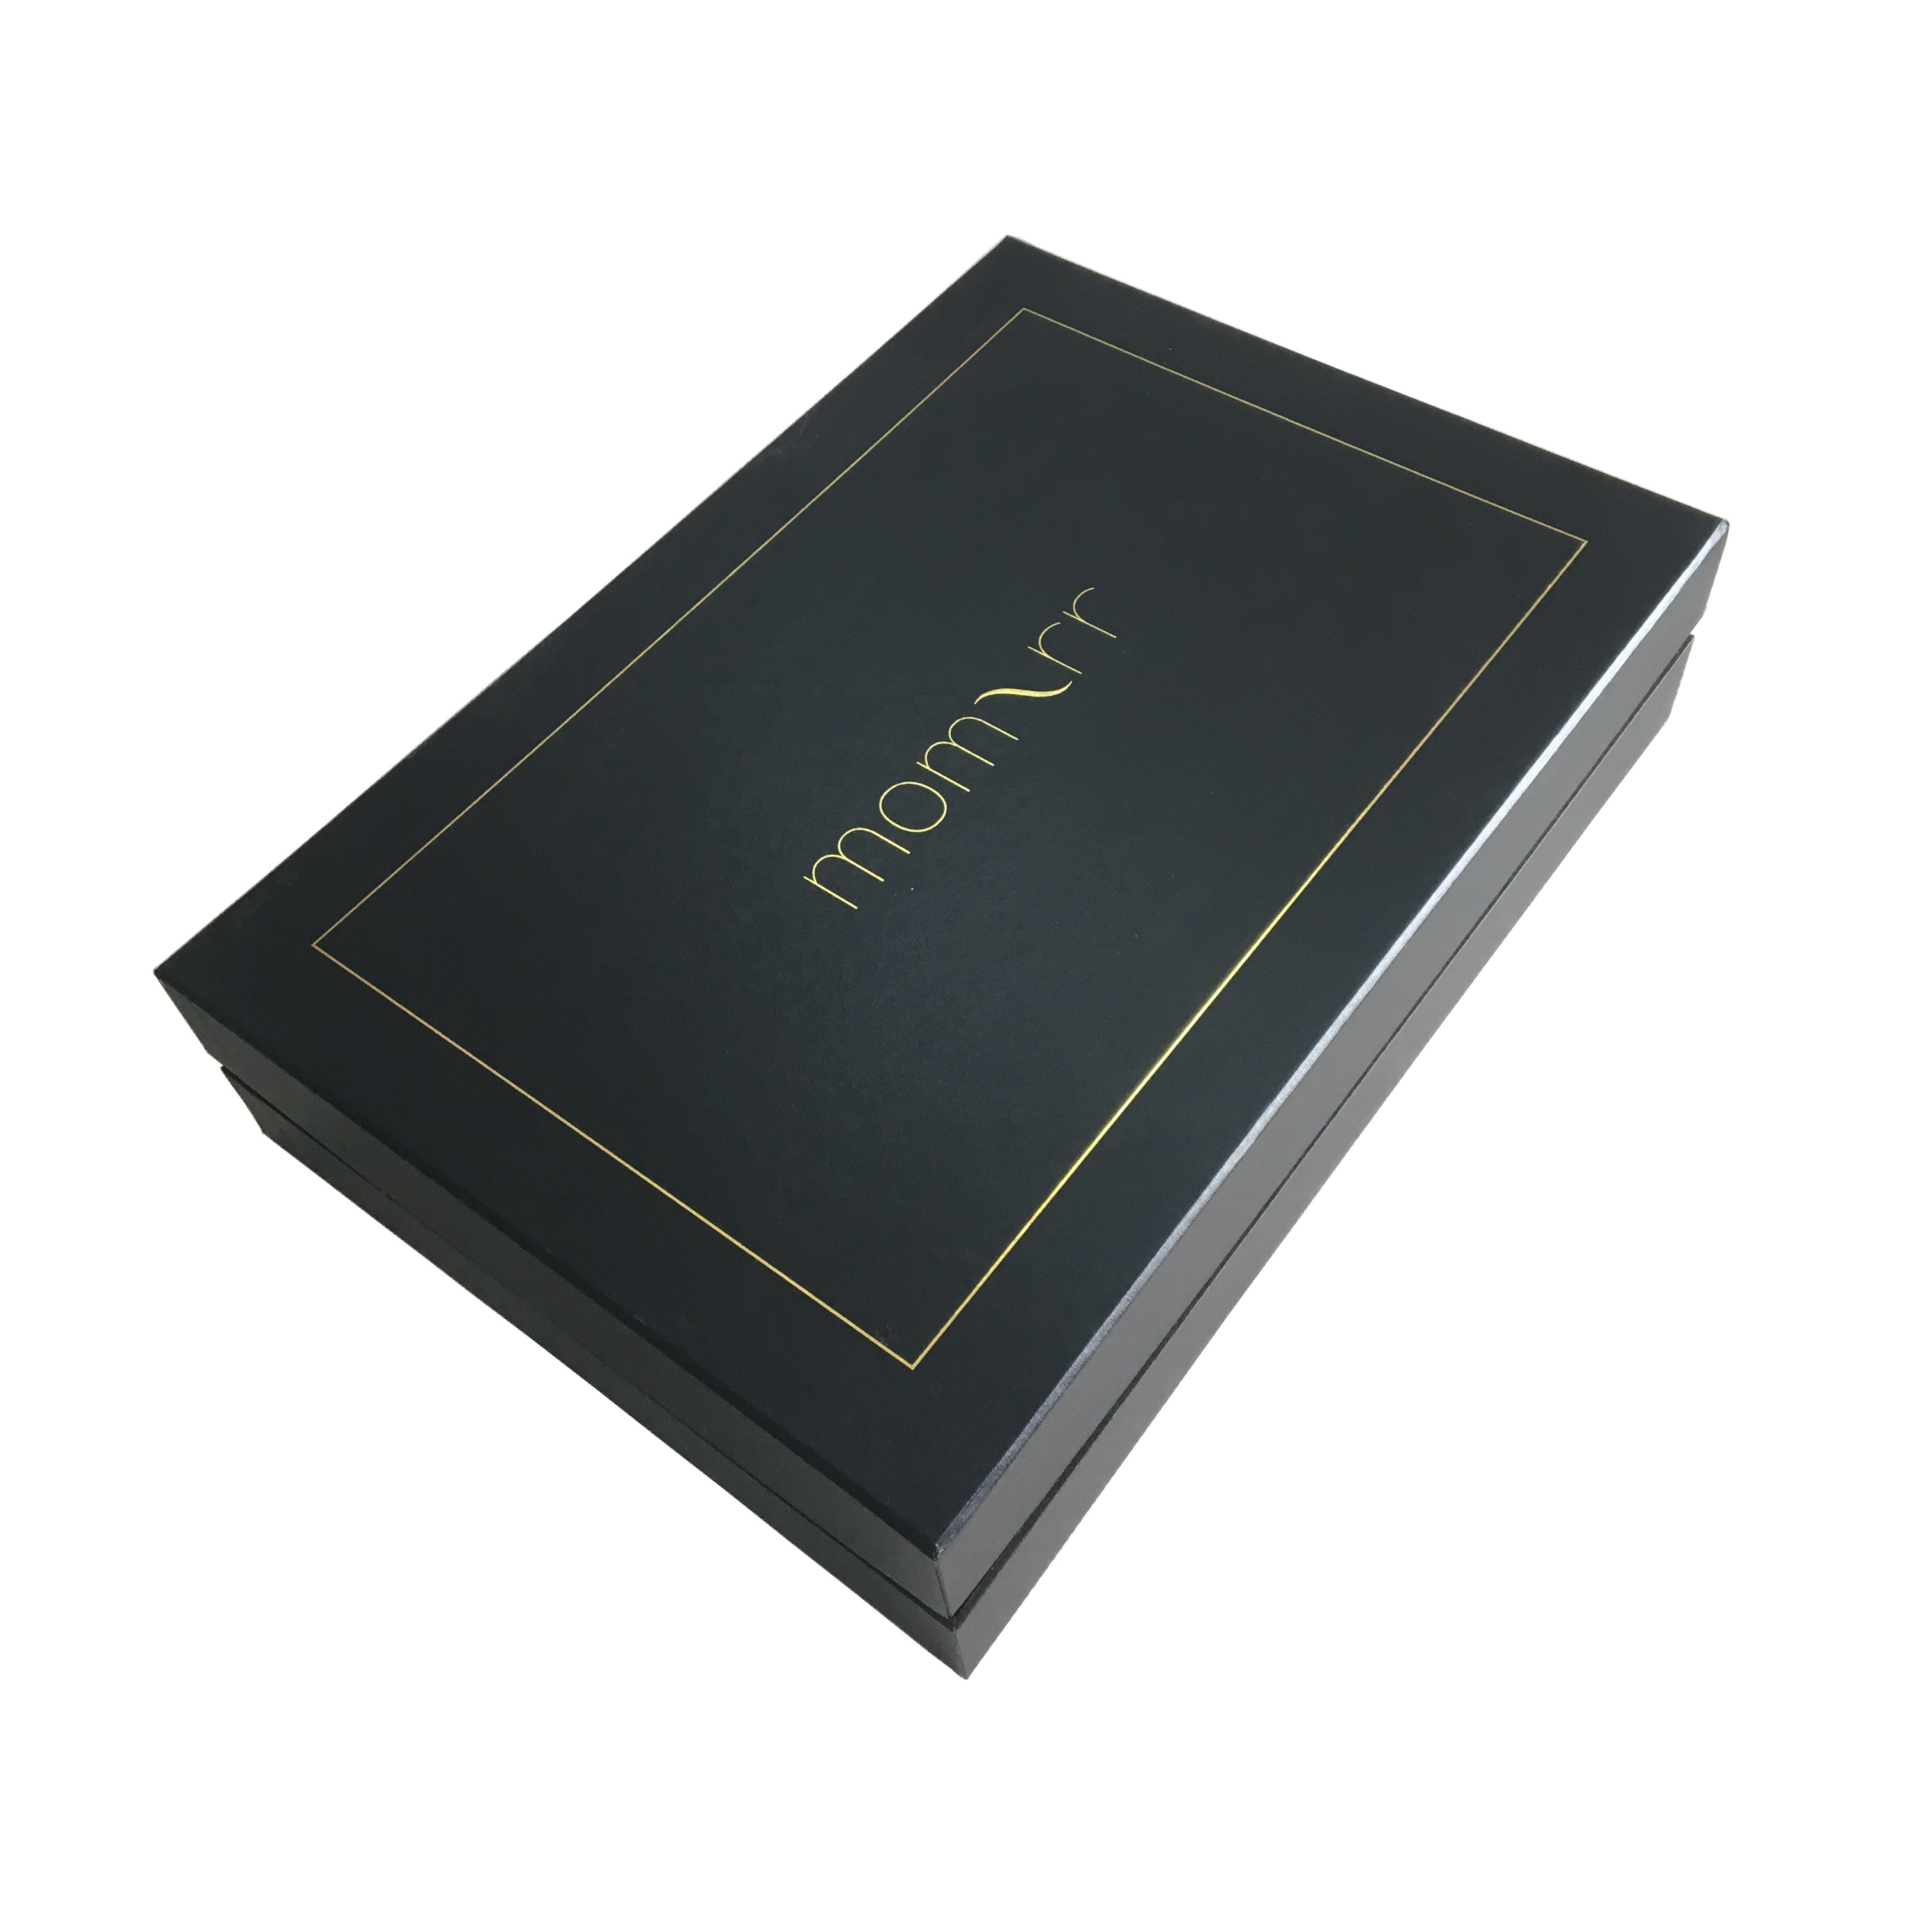 Top Bottom Design Golden Frame Design Hot Stamping <strong>Black</strong> And Golden Christmas Gift Packing Box